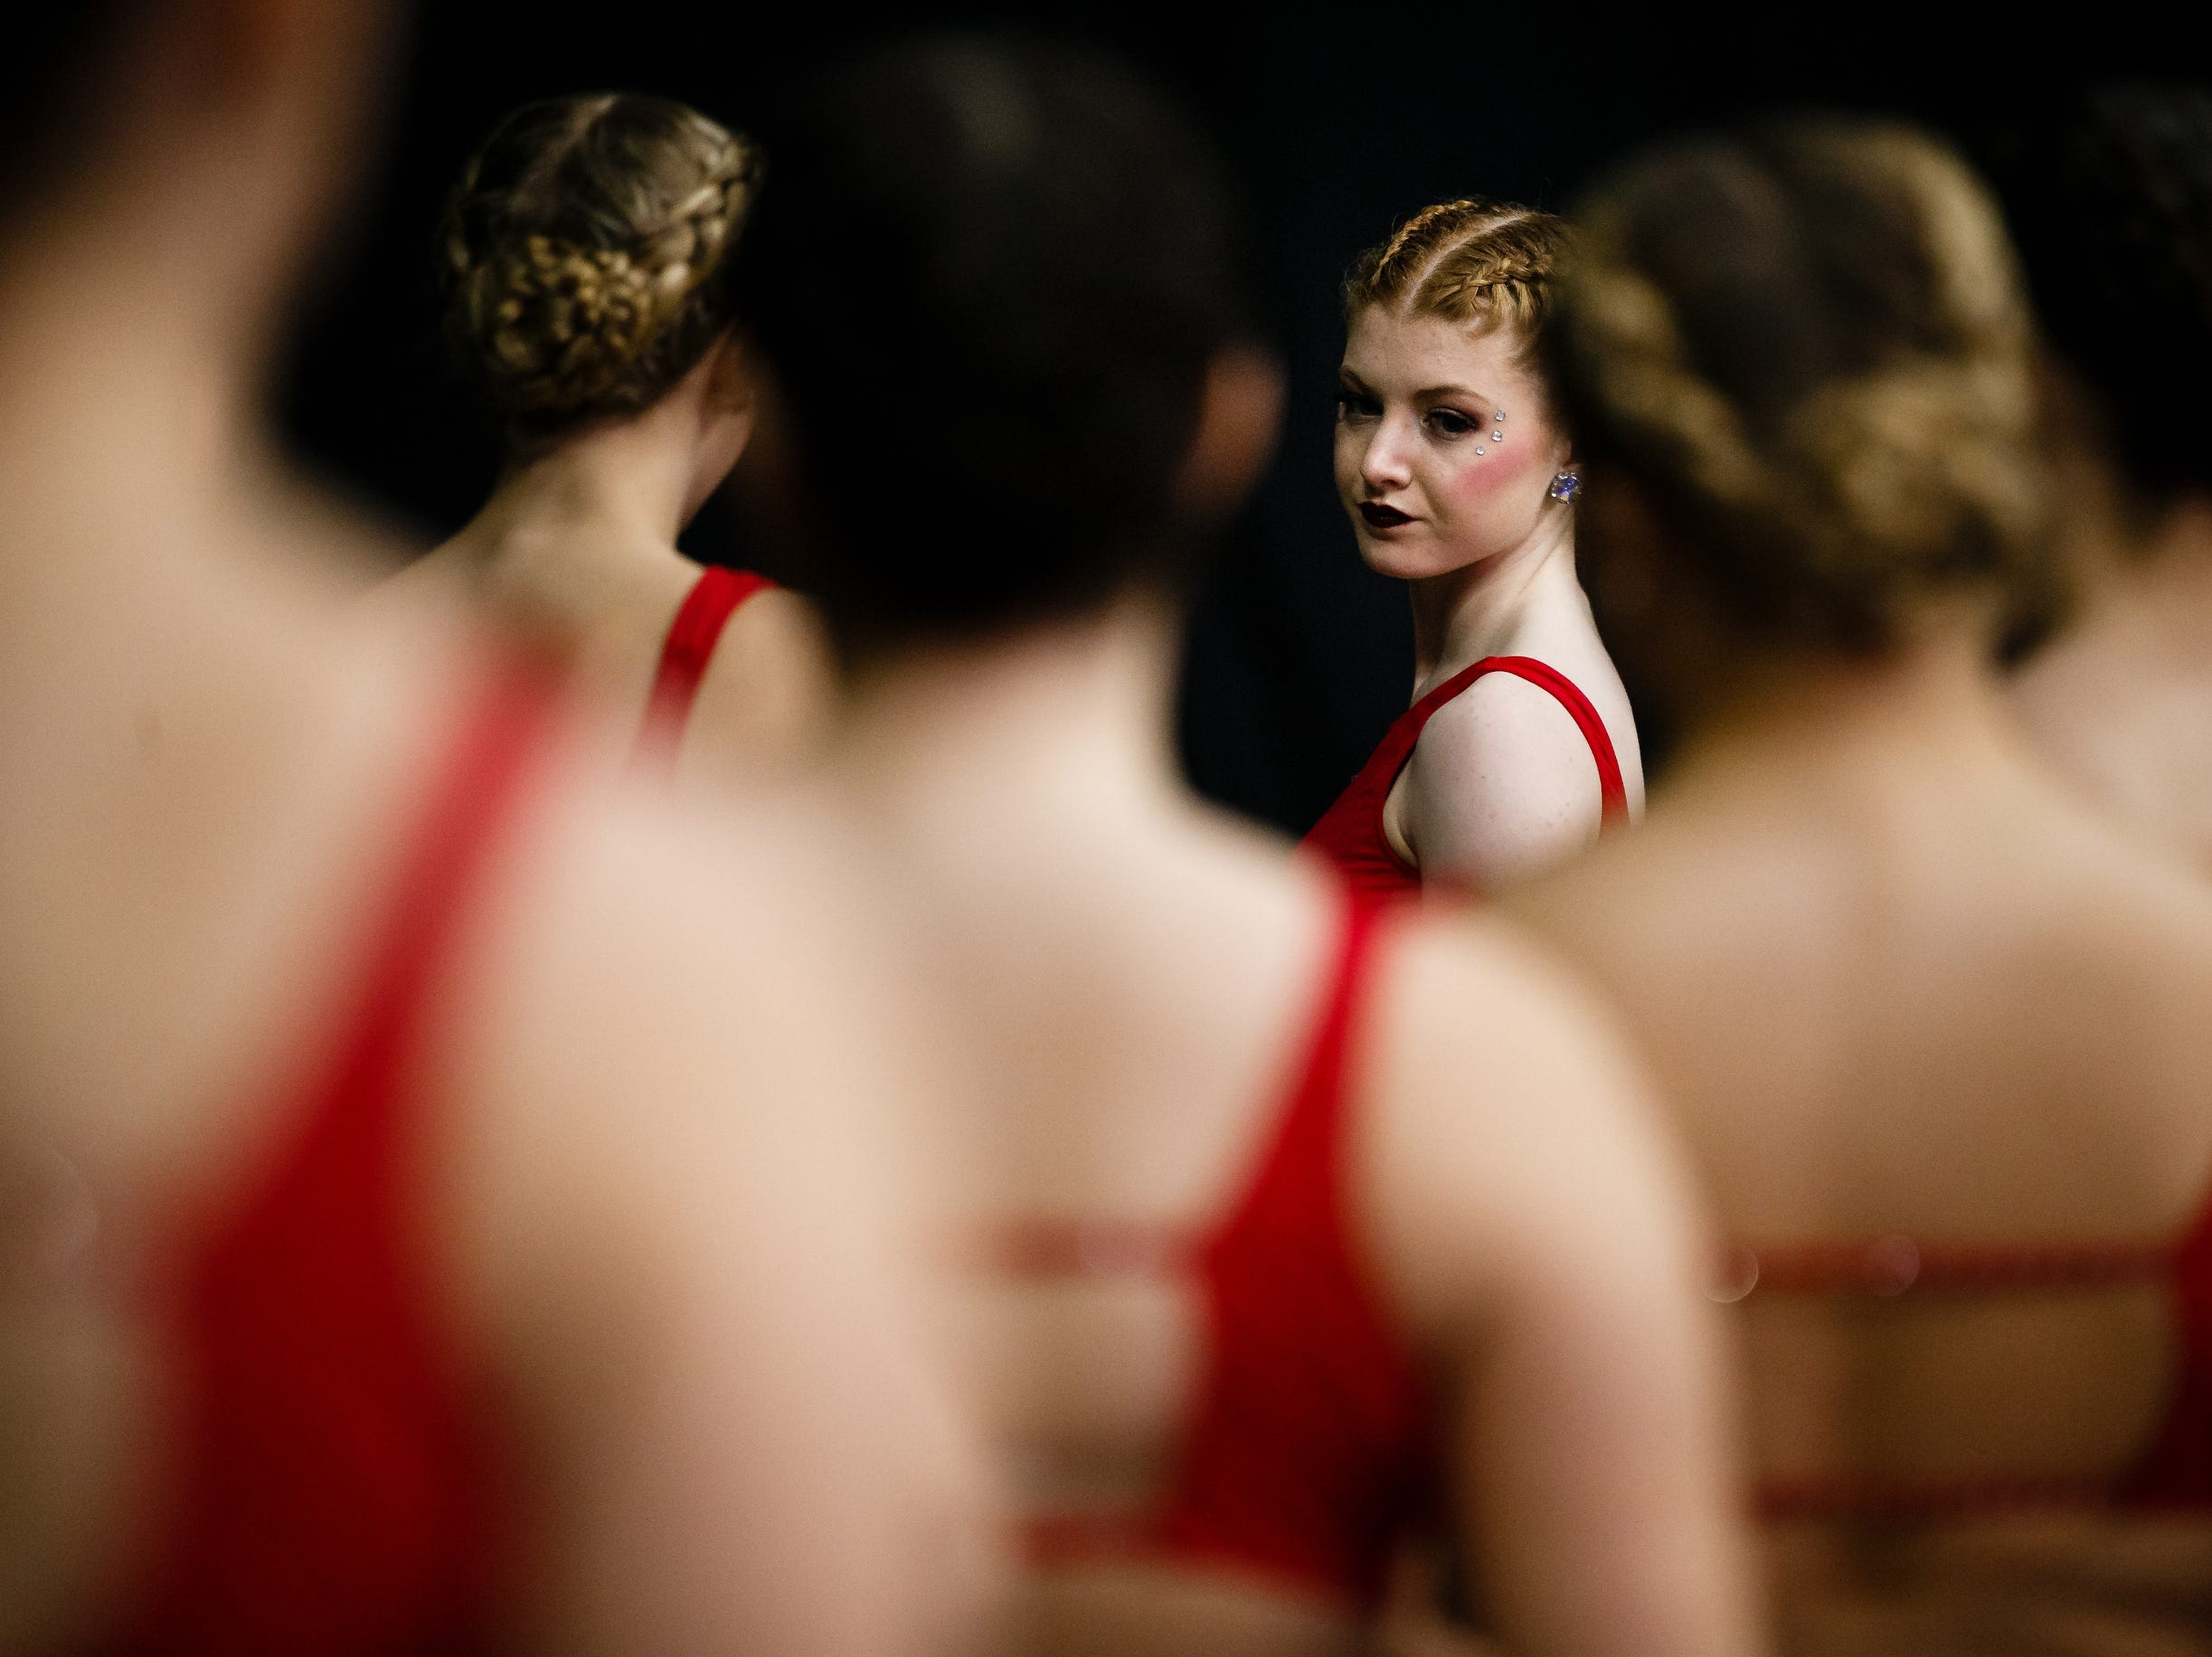 Dancers warm up before performing at the Iowa Dance State Championships at Wells Fargo Arena on Friday, Nov. 30, 2018, in Des Moines.